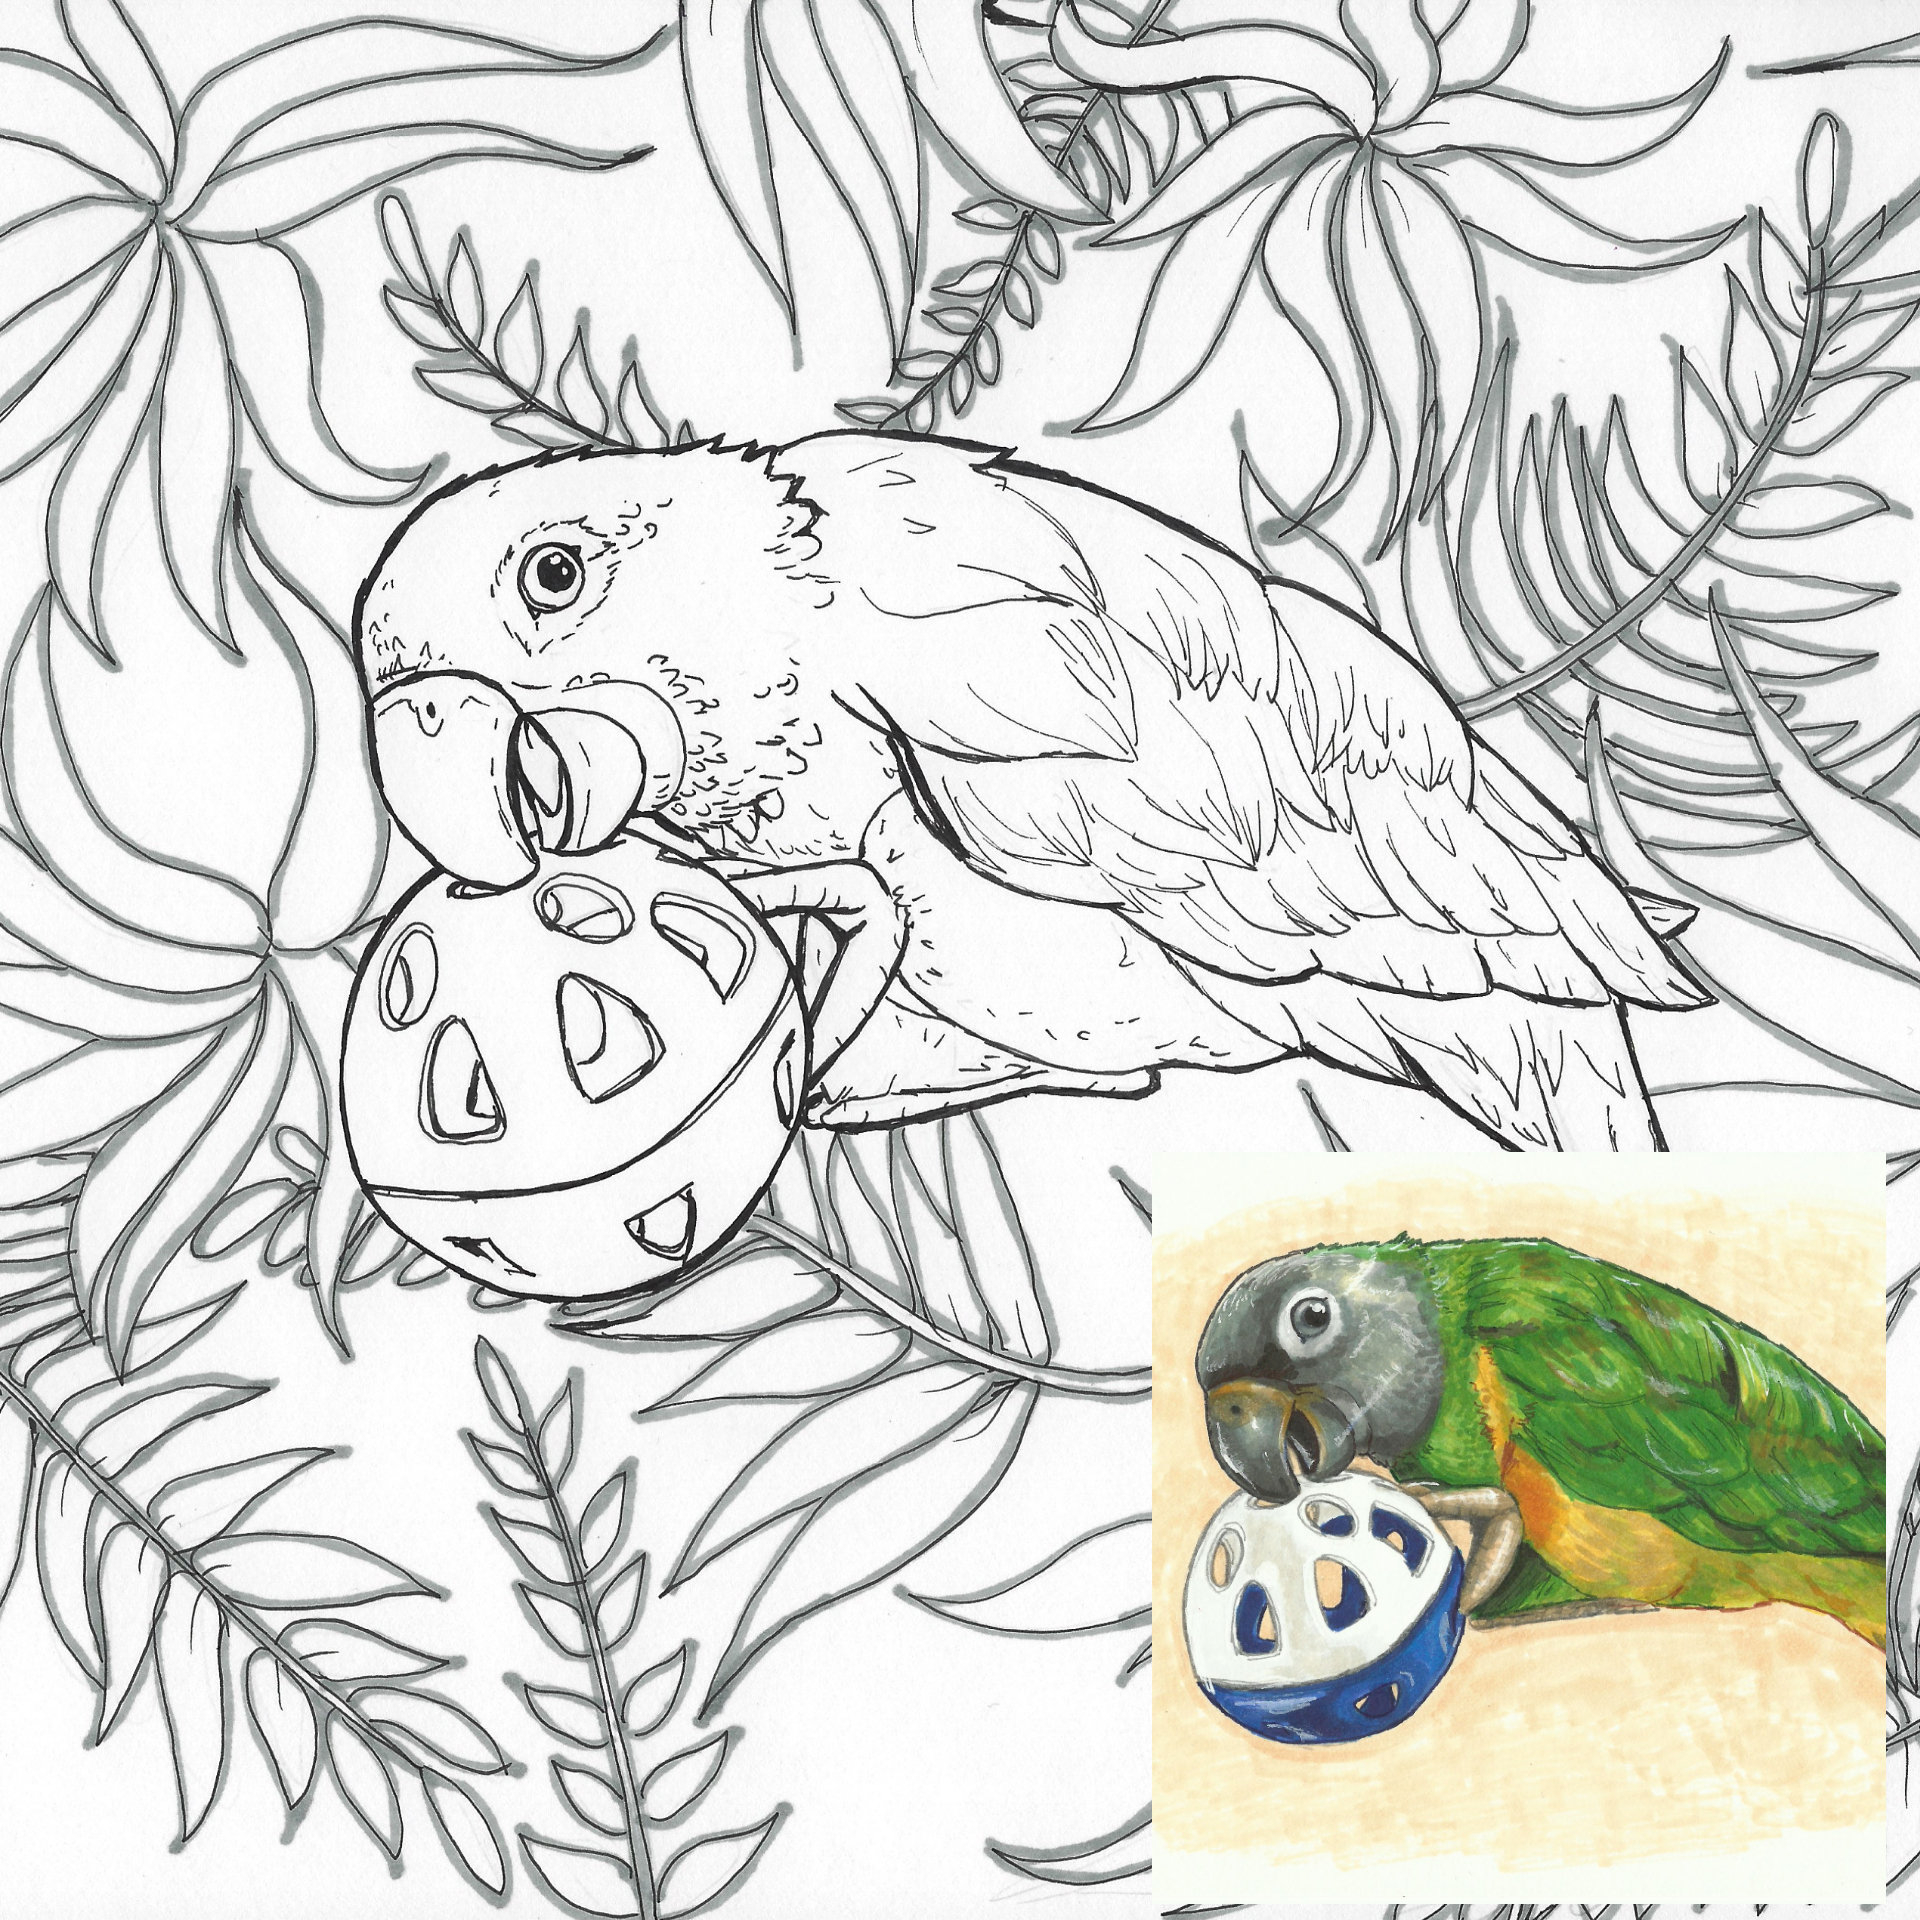 Love Bird Coloring Pages Parakeet Bird Coloring Page With Printable Wall Art Instant Download Coloring Sheets For Adults And Kids Animal Theme Party Activity